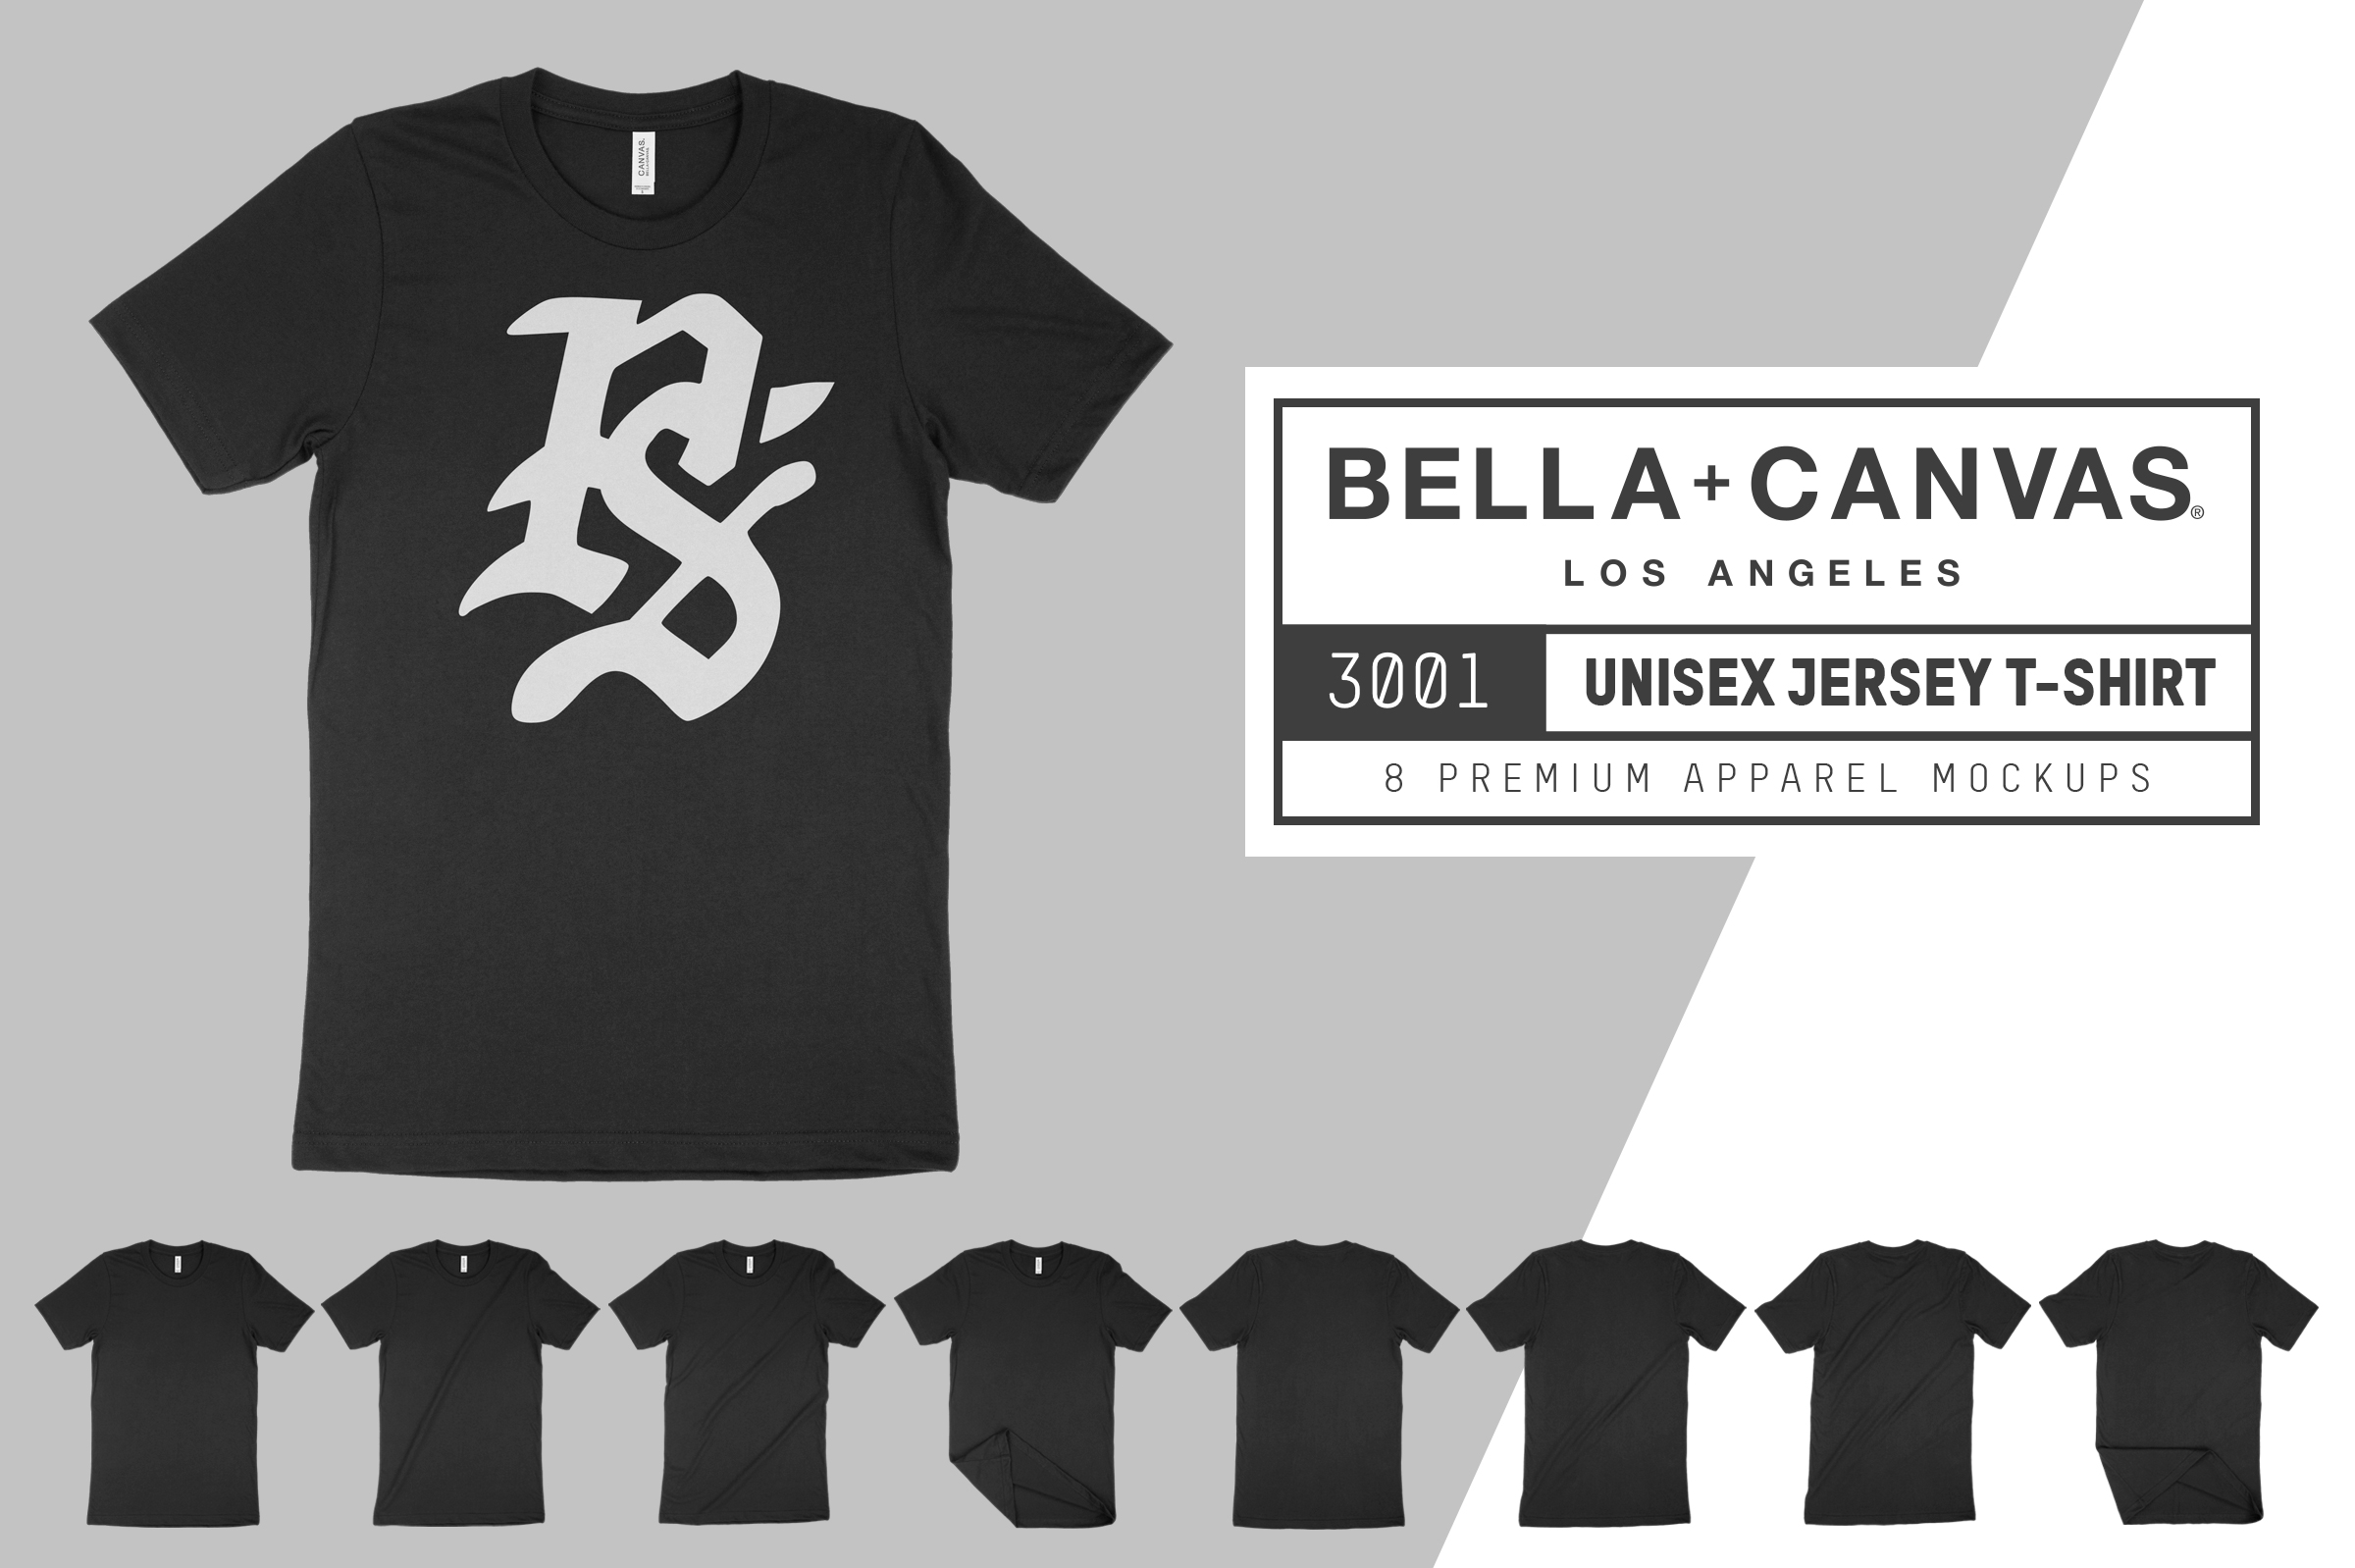 Bella Canvas 3001 Unisex Jersey T Shirt Mockup Set